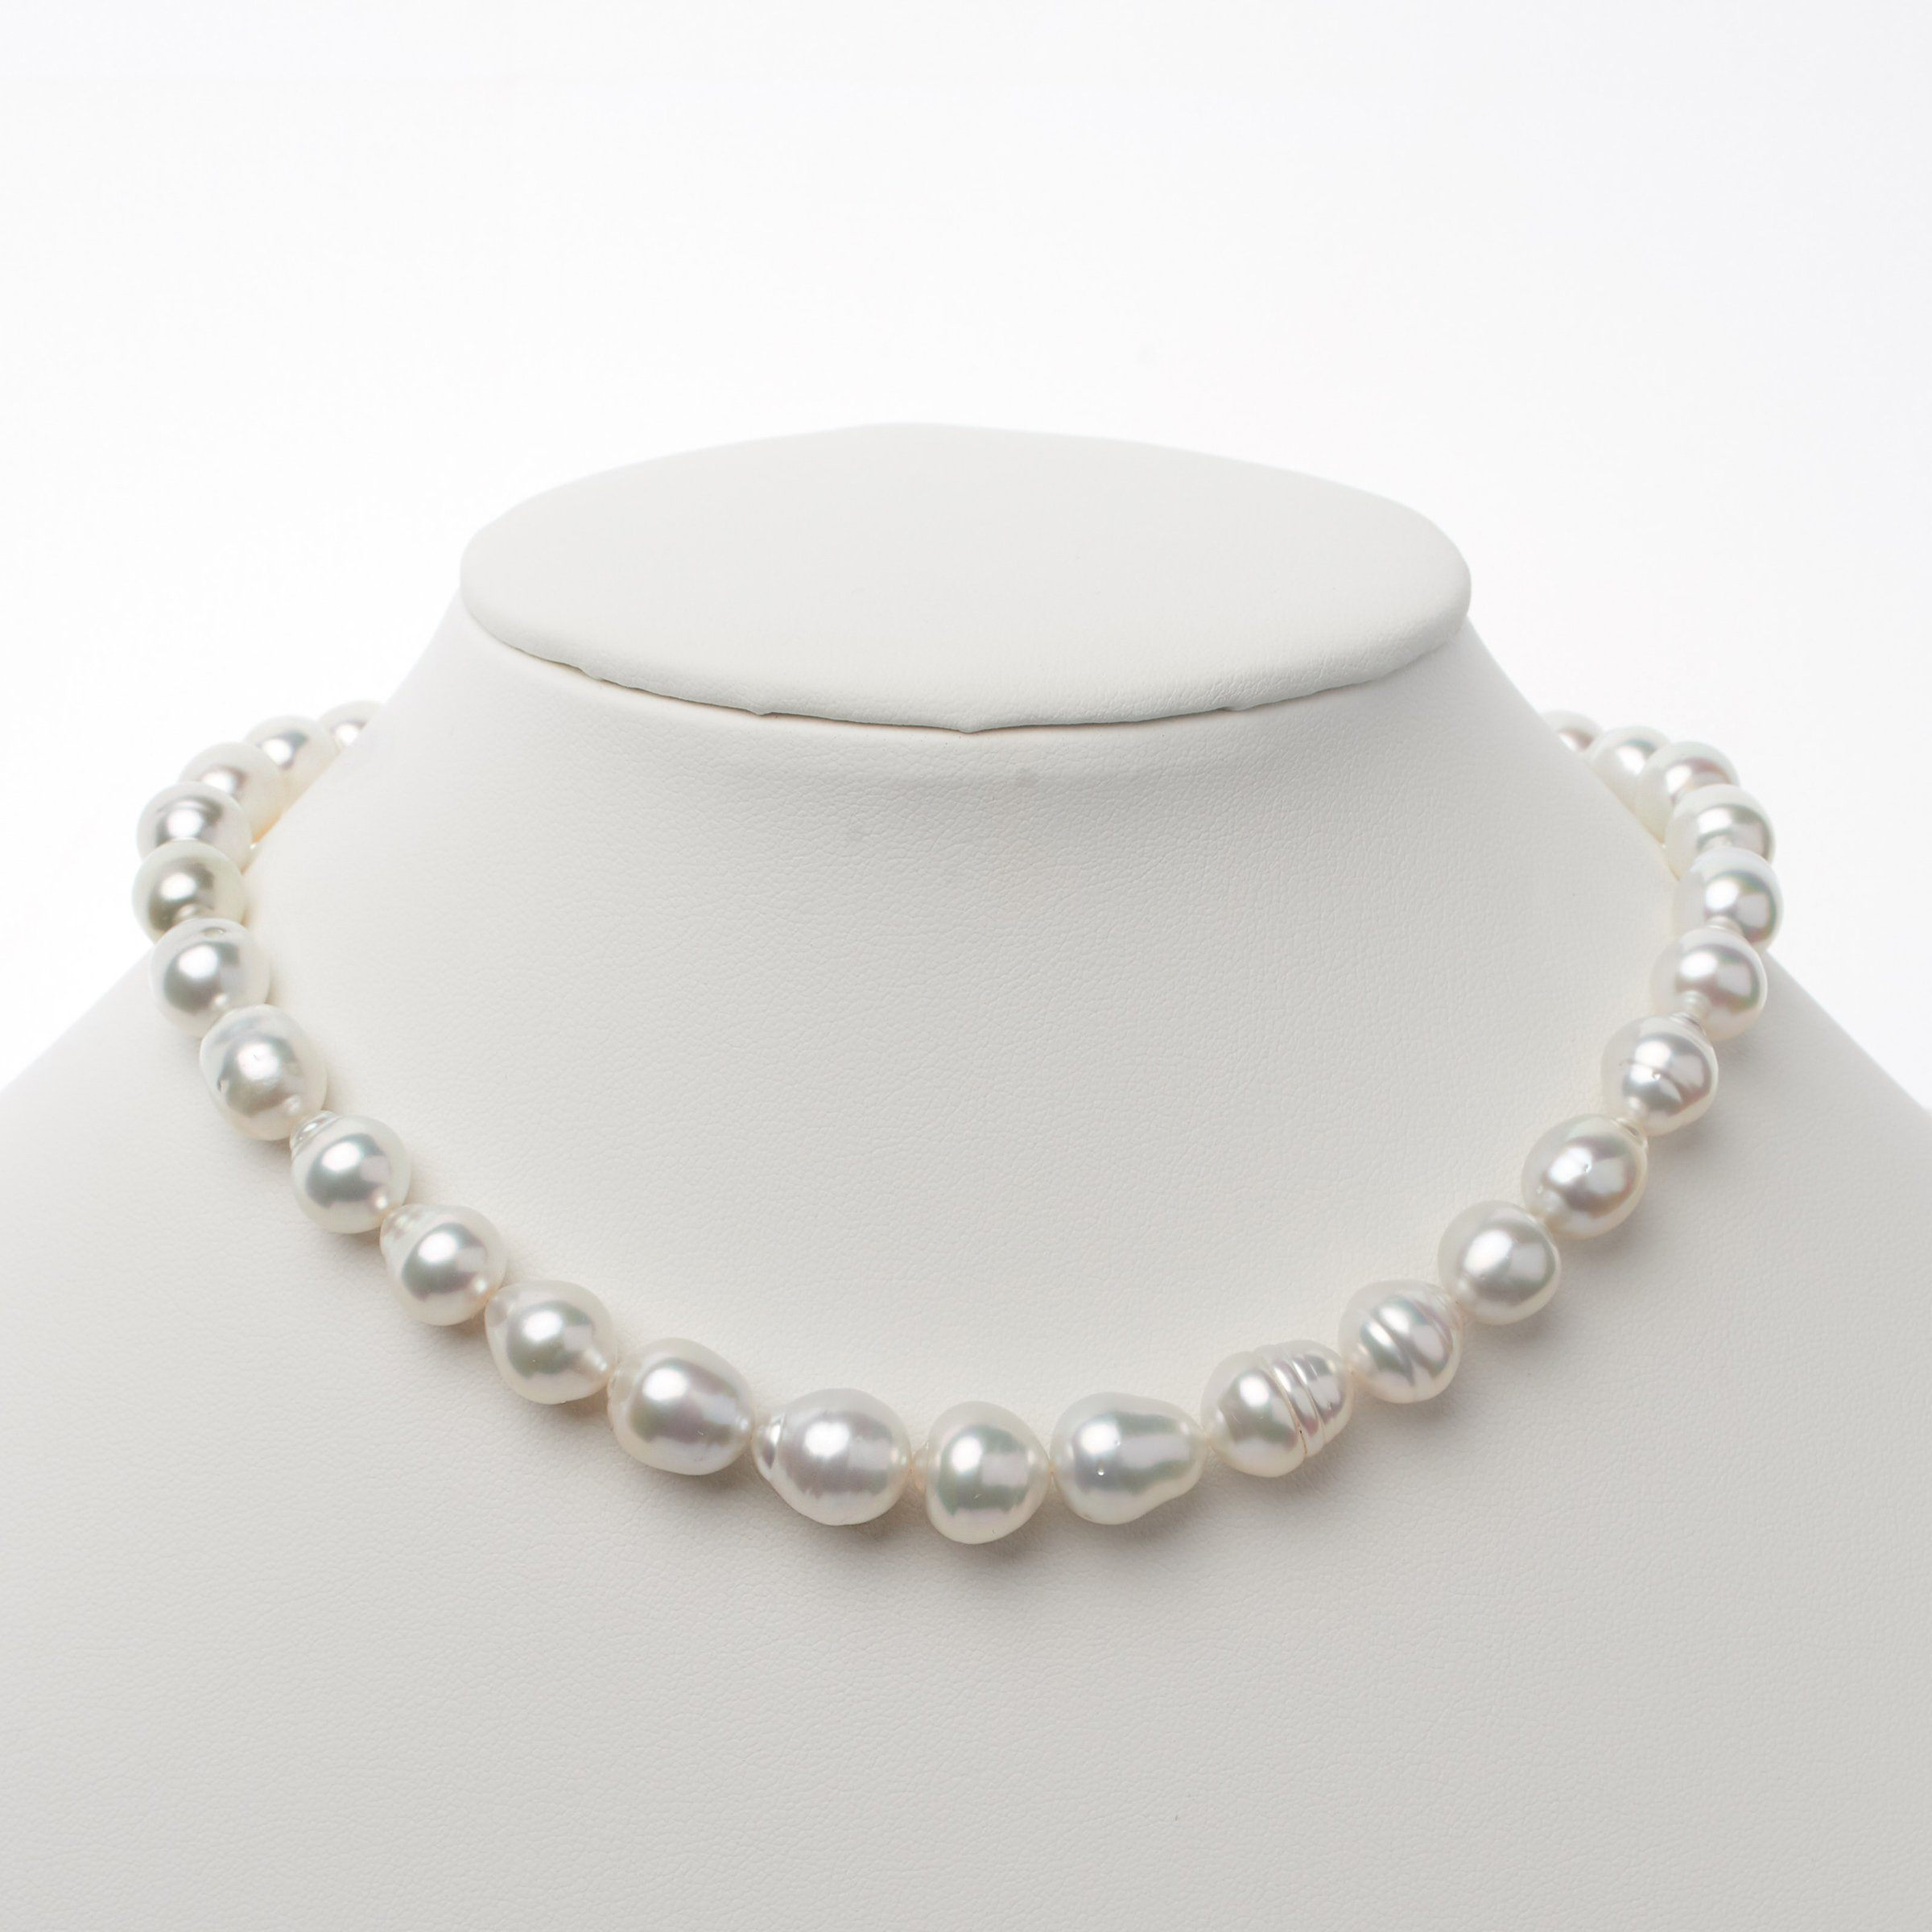 8.1-11.8 mm AA+/AAA White South Sea Baroque Necklace